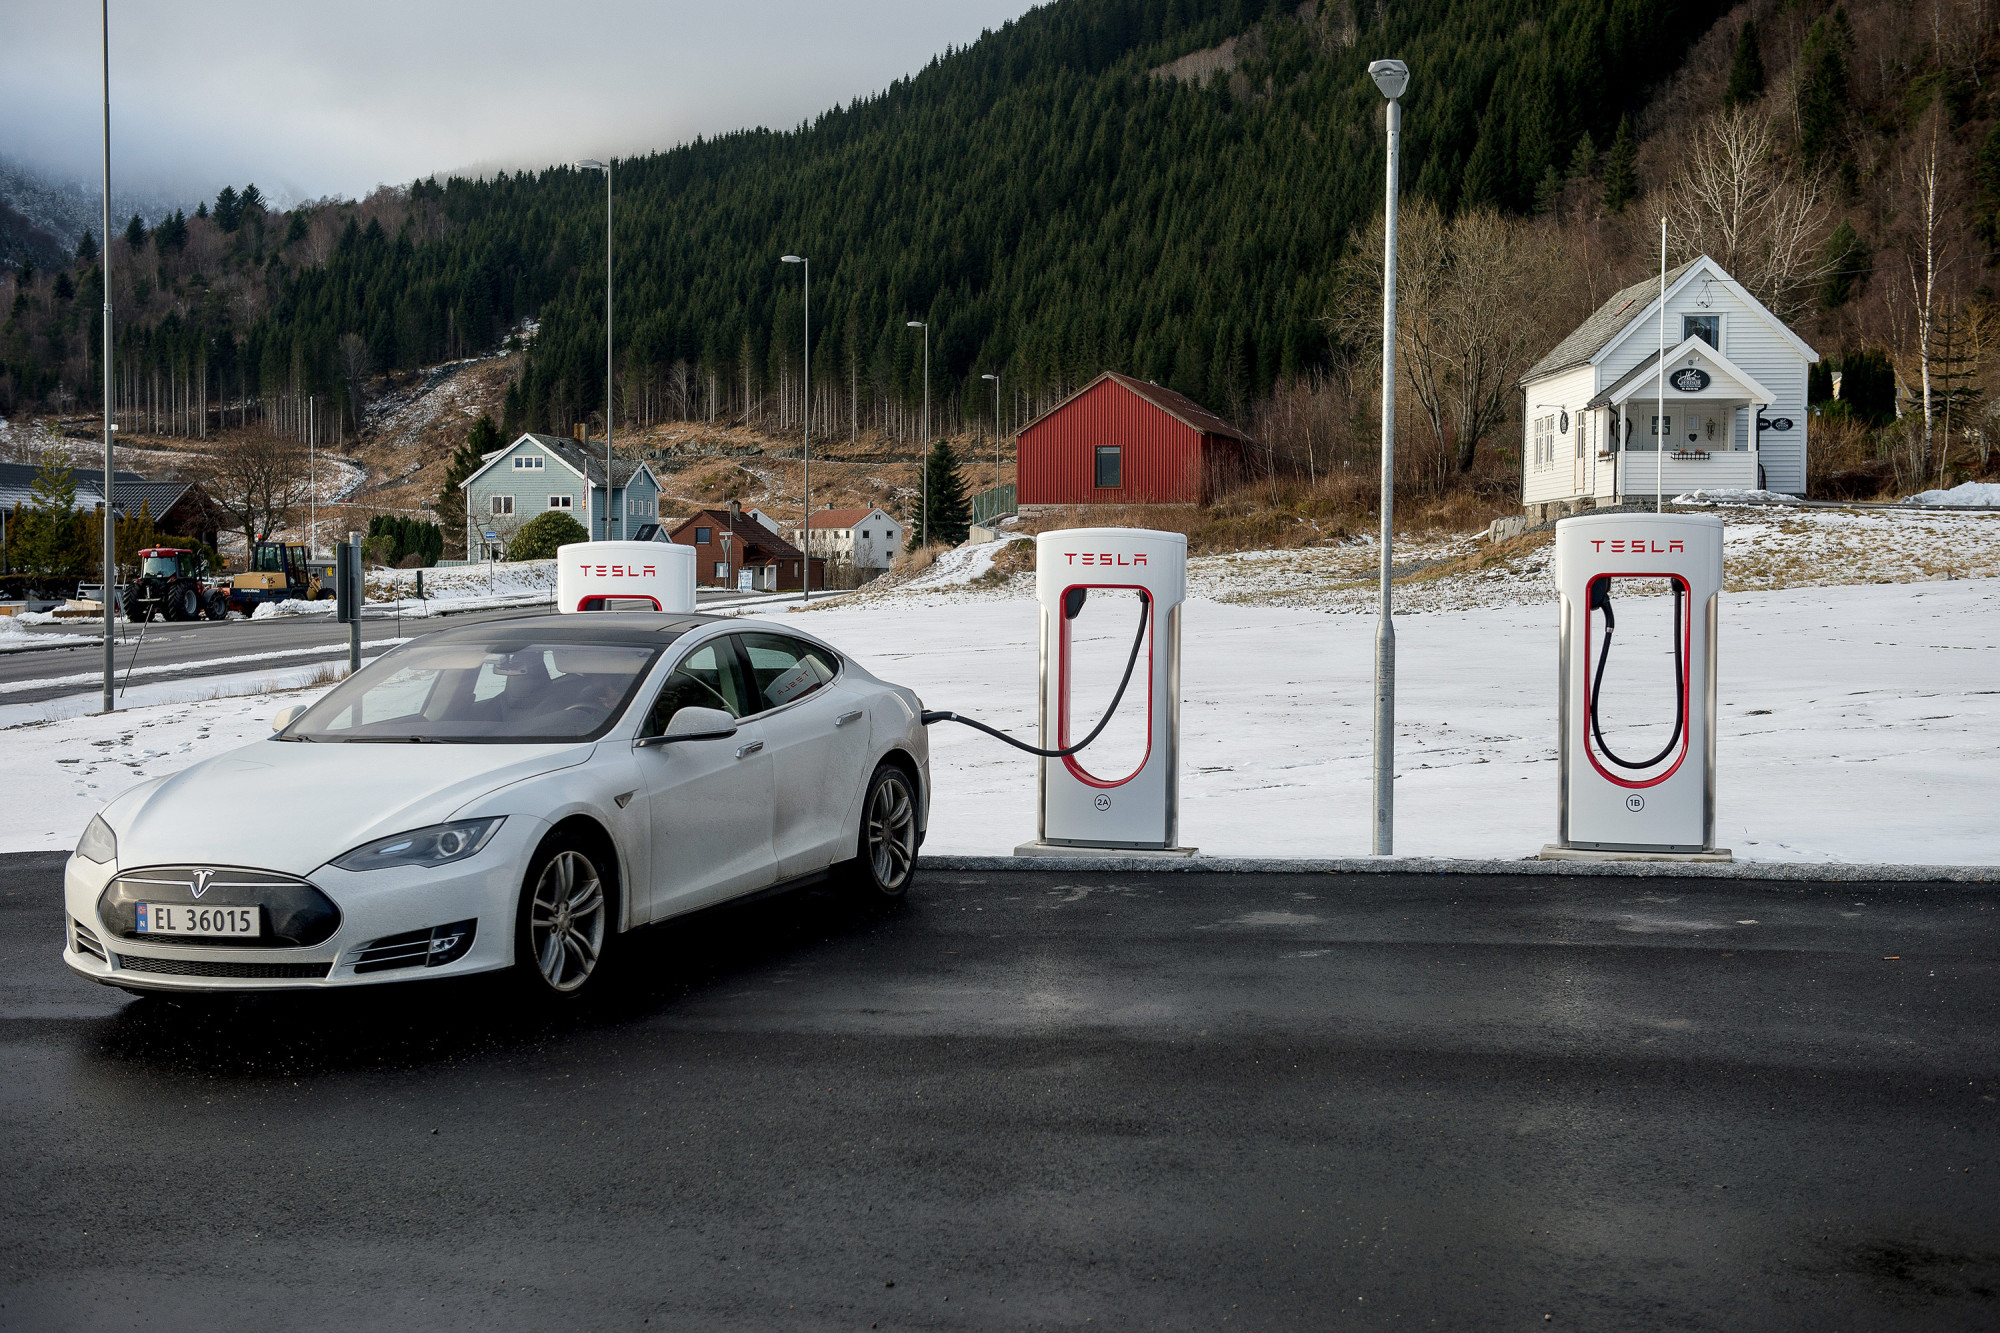 A Tesla automobile stands charging at a Tesla Inc. charging station in Lavik near Bergen, Norway.